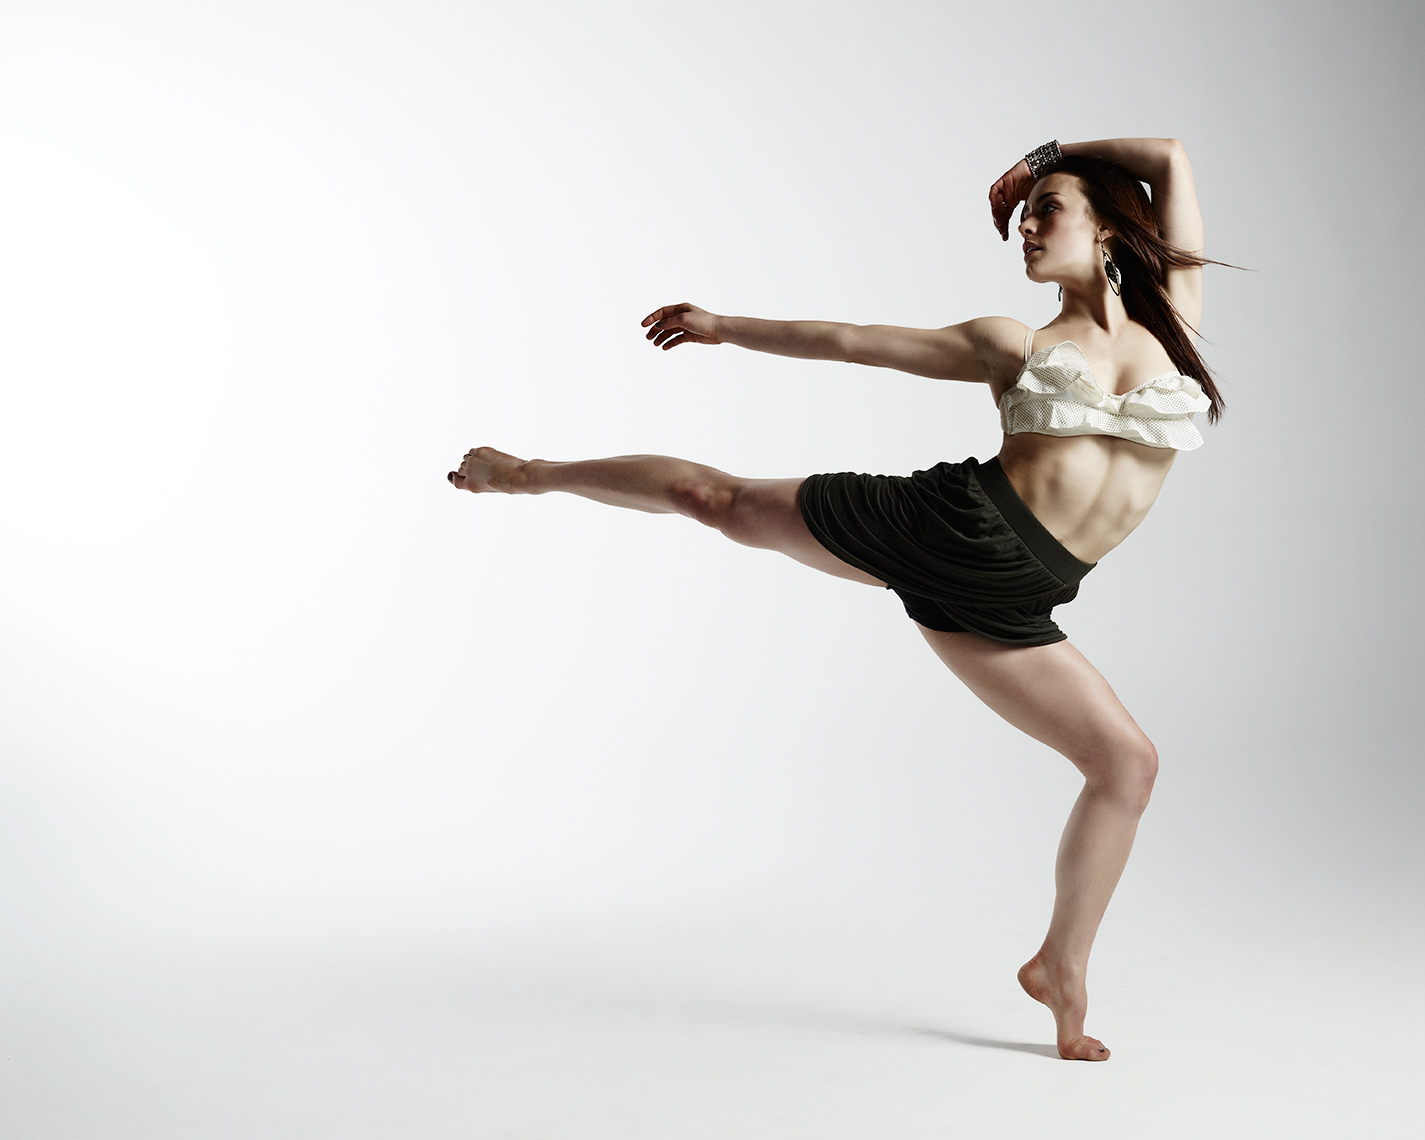 Kathryn_McCormick_Step Up_SYTYCD_Dance_Fitness_Michael J Moore.jpg